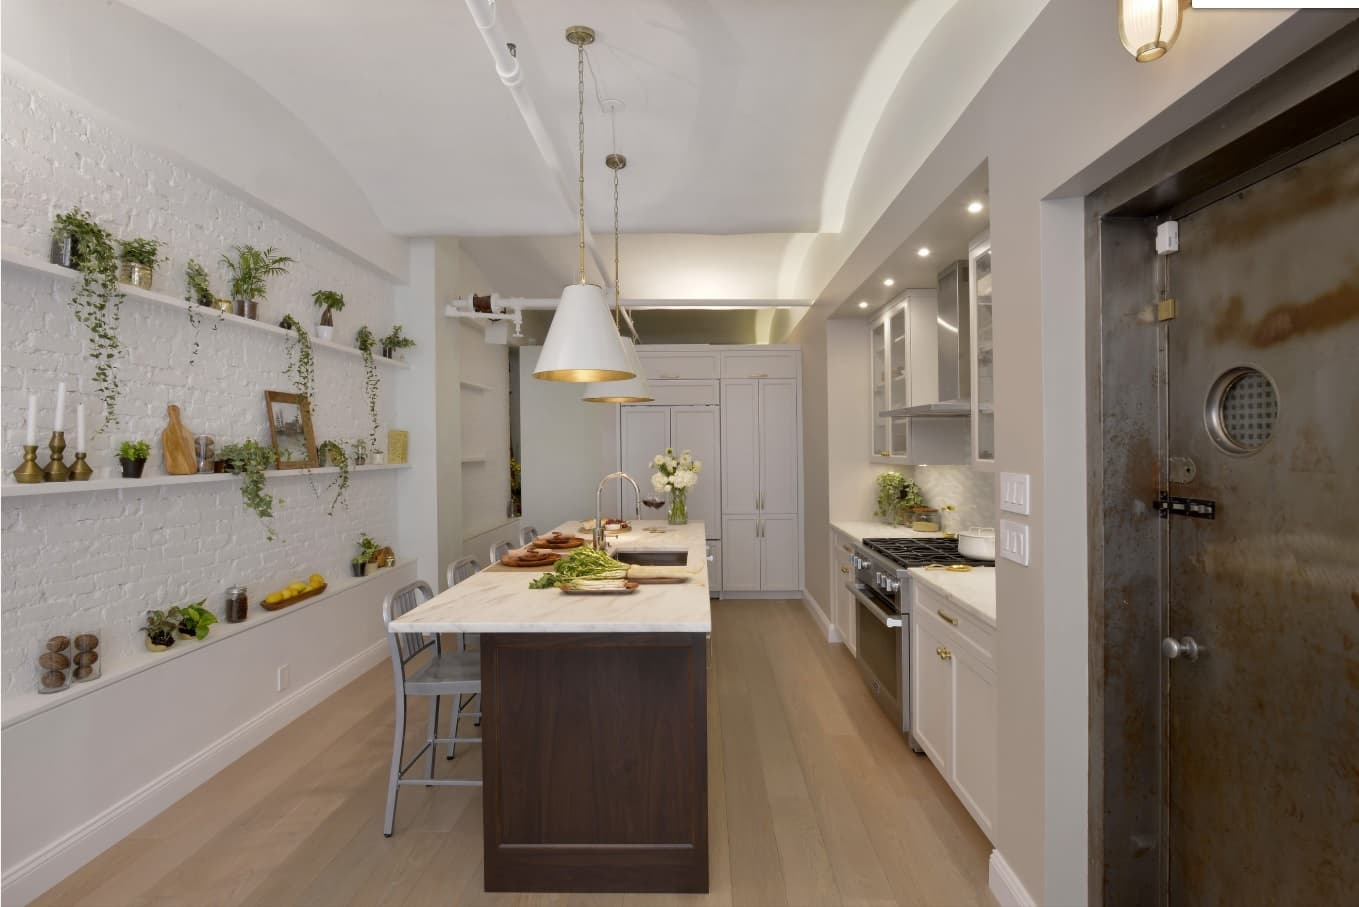 12 Ways You Could Make Your Home More Eco Friendly. Dark sided kitchen island and Classic white interior with plants on shelving